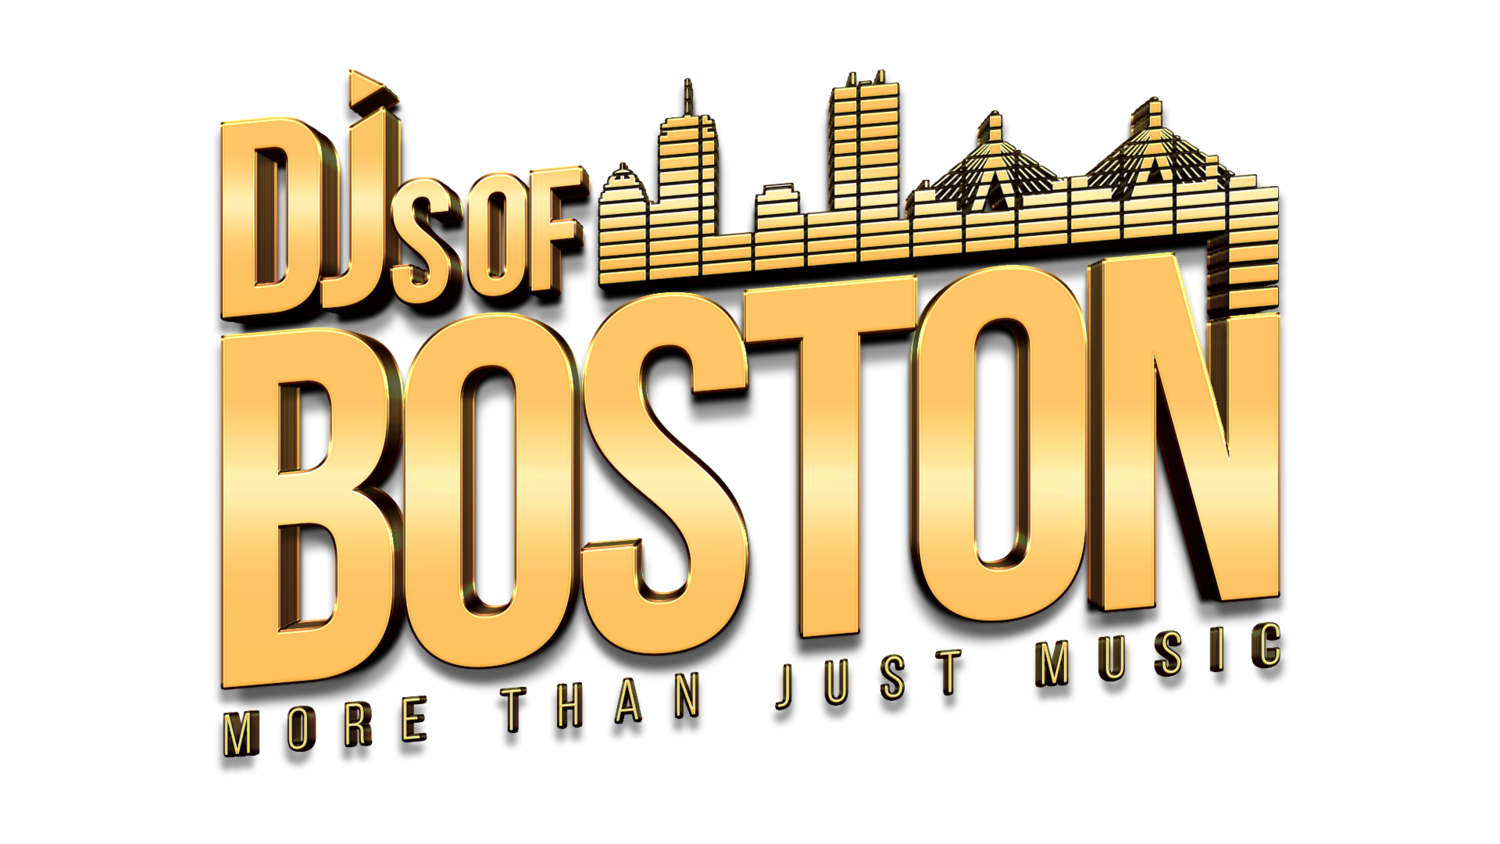 DJs of Boston